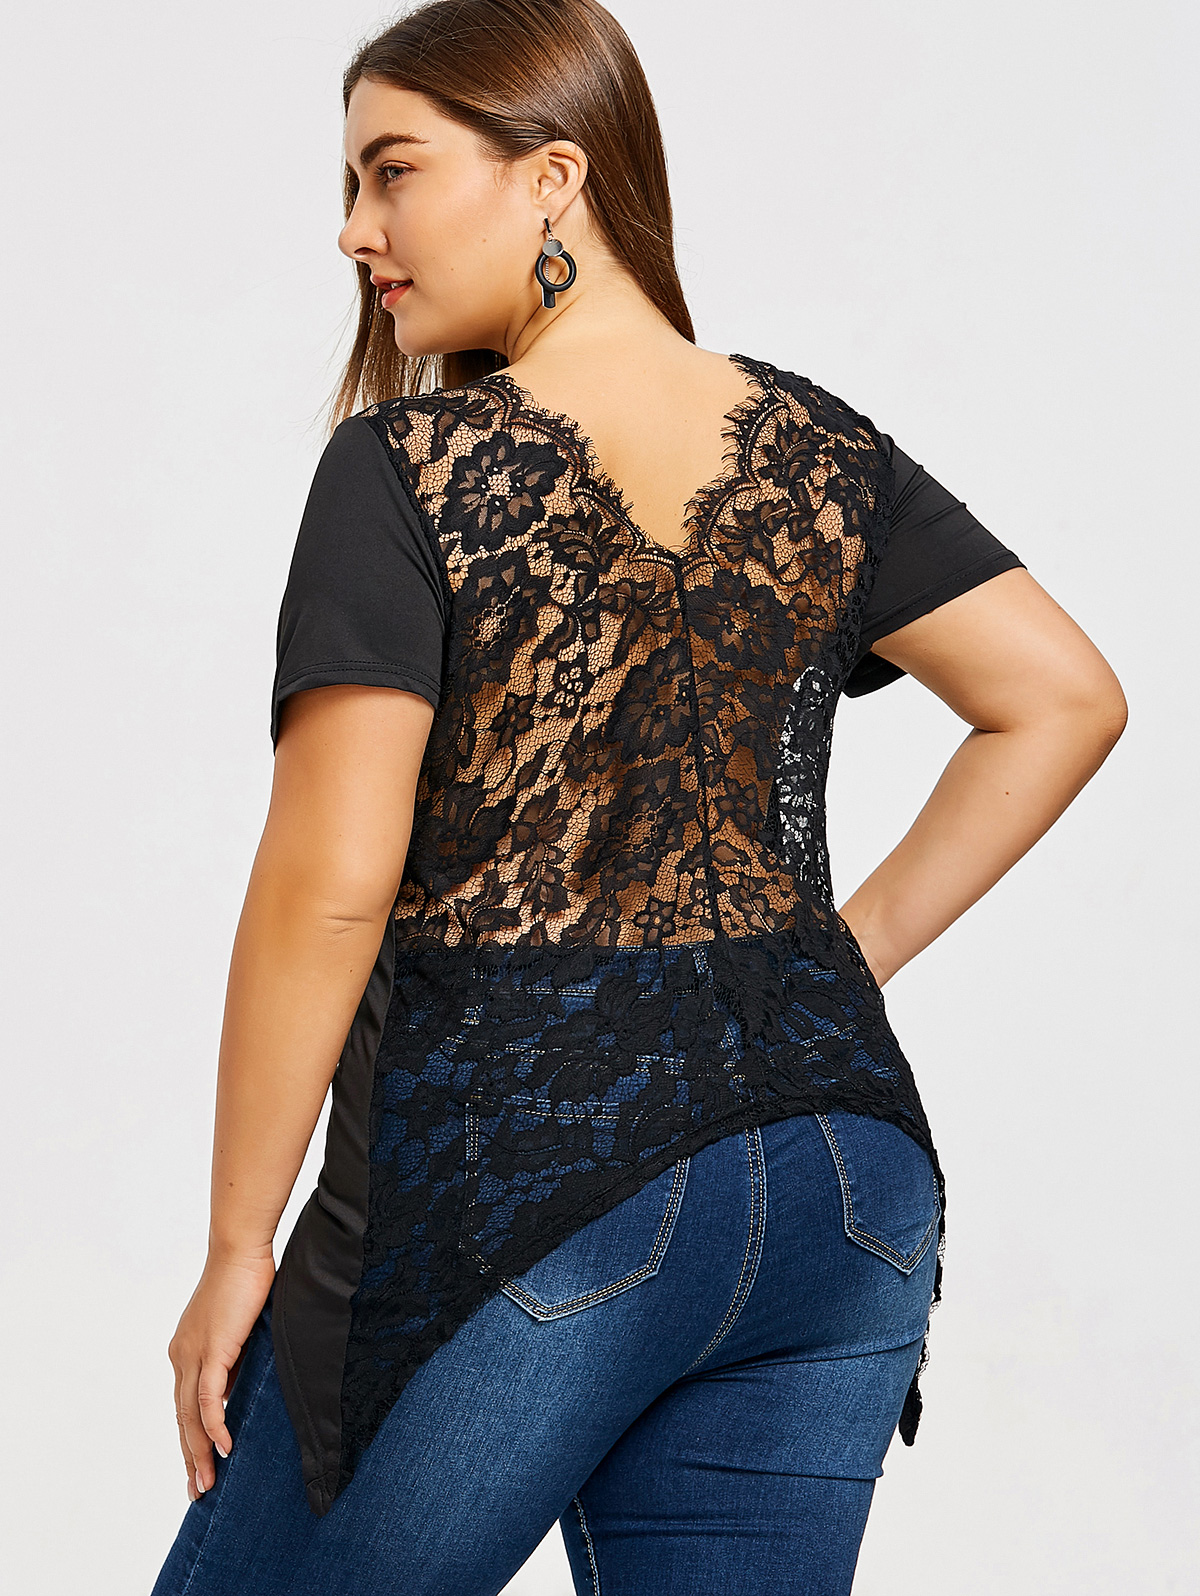 4d185e80edc Gamiss Plus Size Asymmetrical Lace T Shirt Black Sexy T Shirts Women T  Shirts Plus Size Lace Trim Ripped Tunic Ladies Tops-in T-Shirts from Women s  Clothing ...